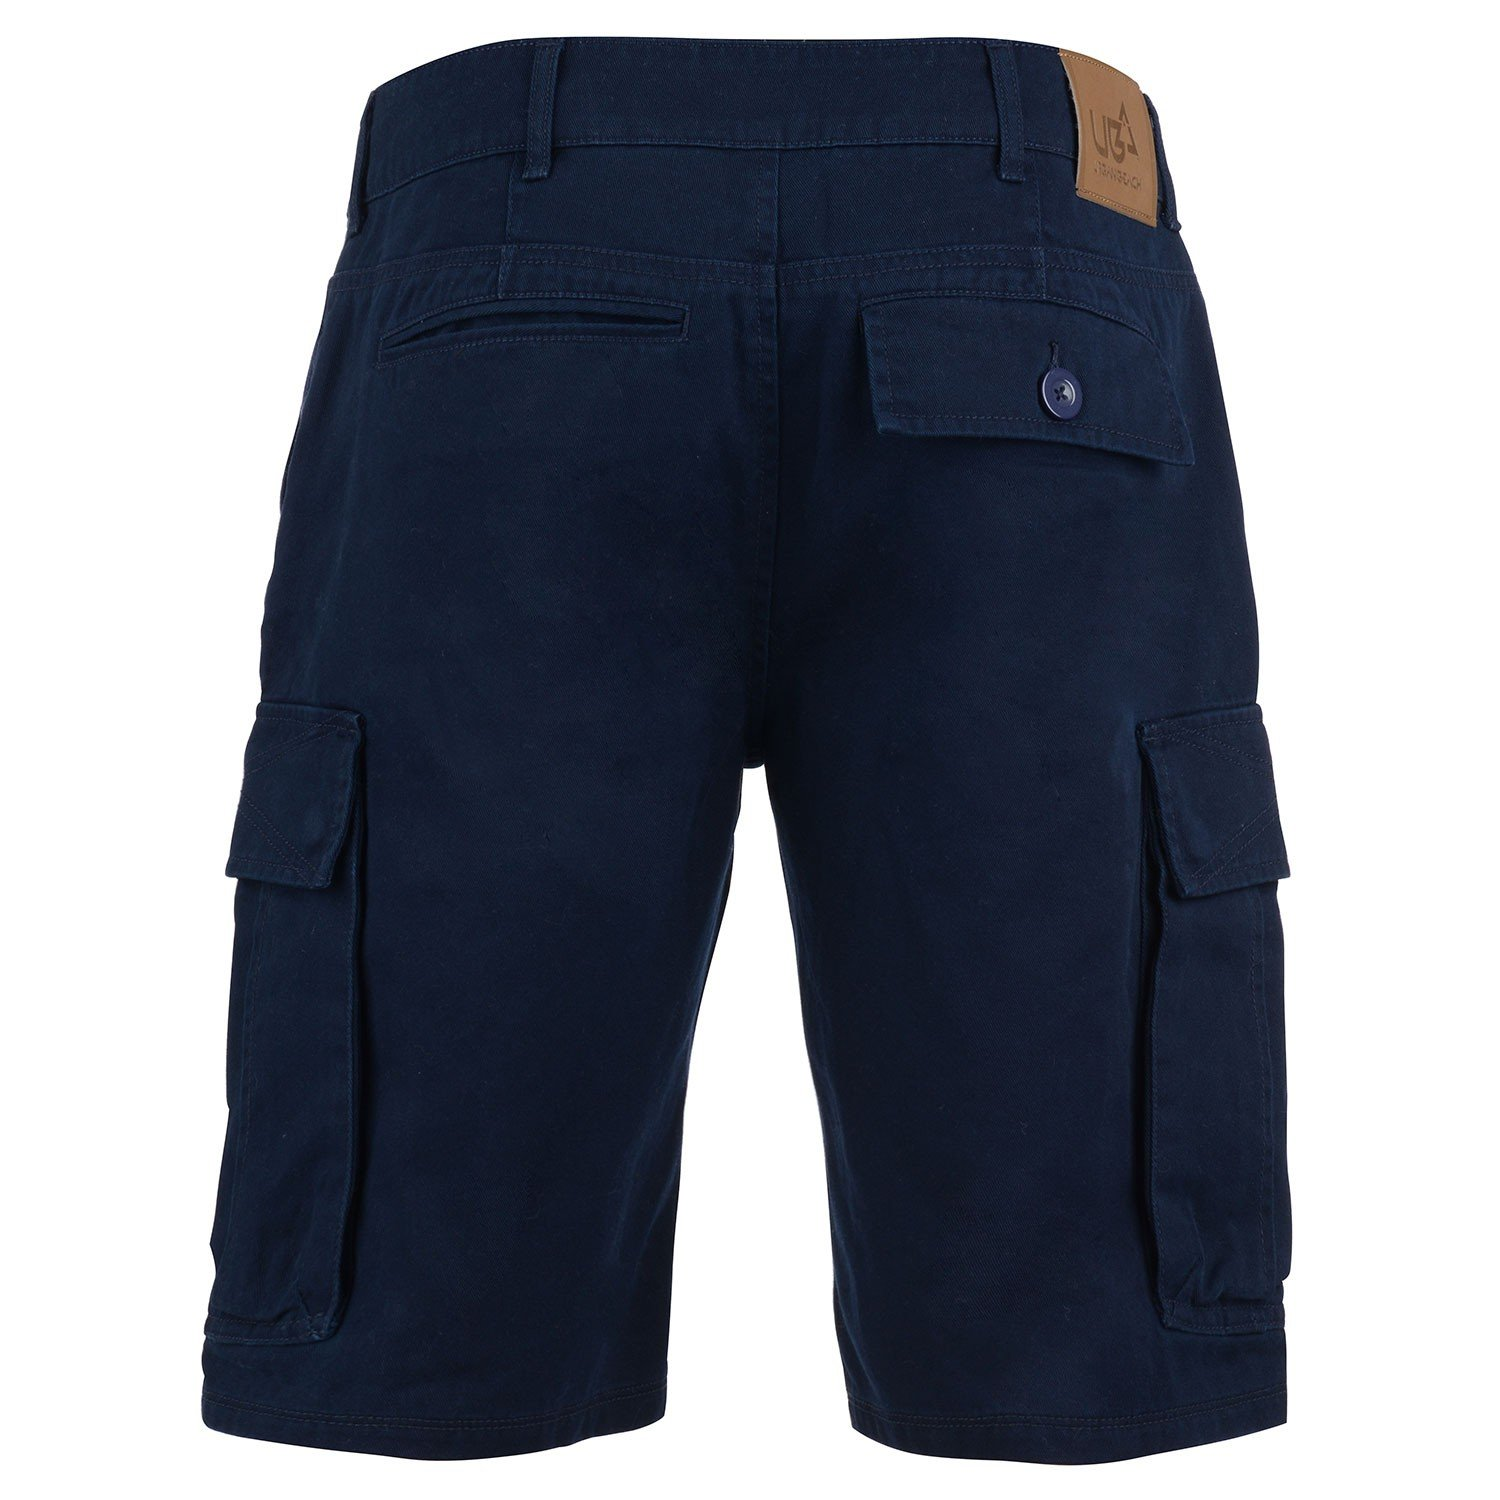 Mens Navy Cargo Shorts Amazon - Free Delivery Over £20 ...